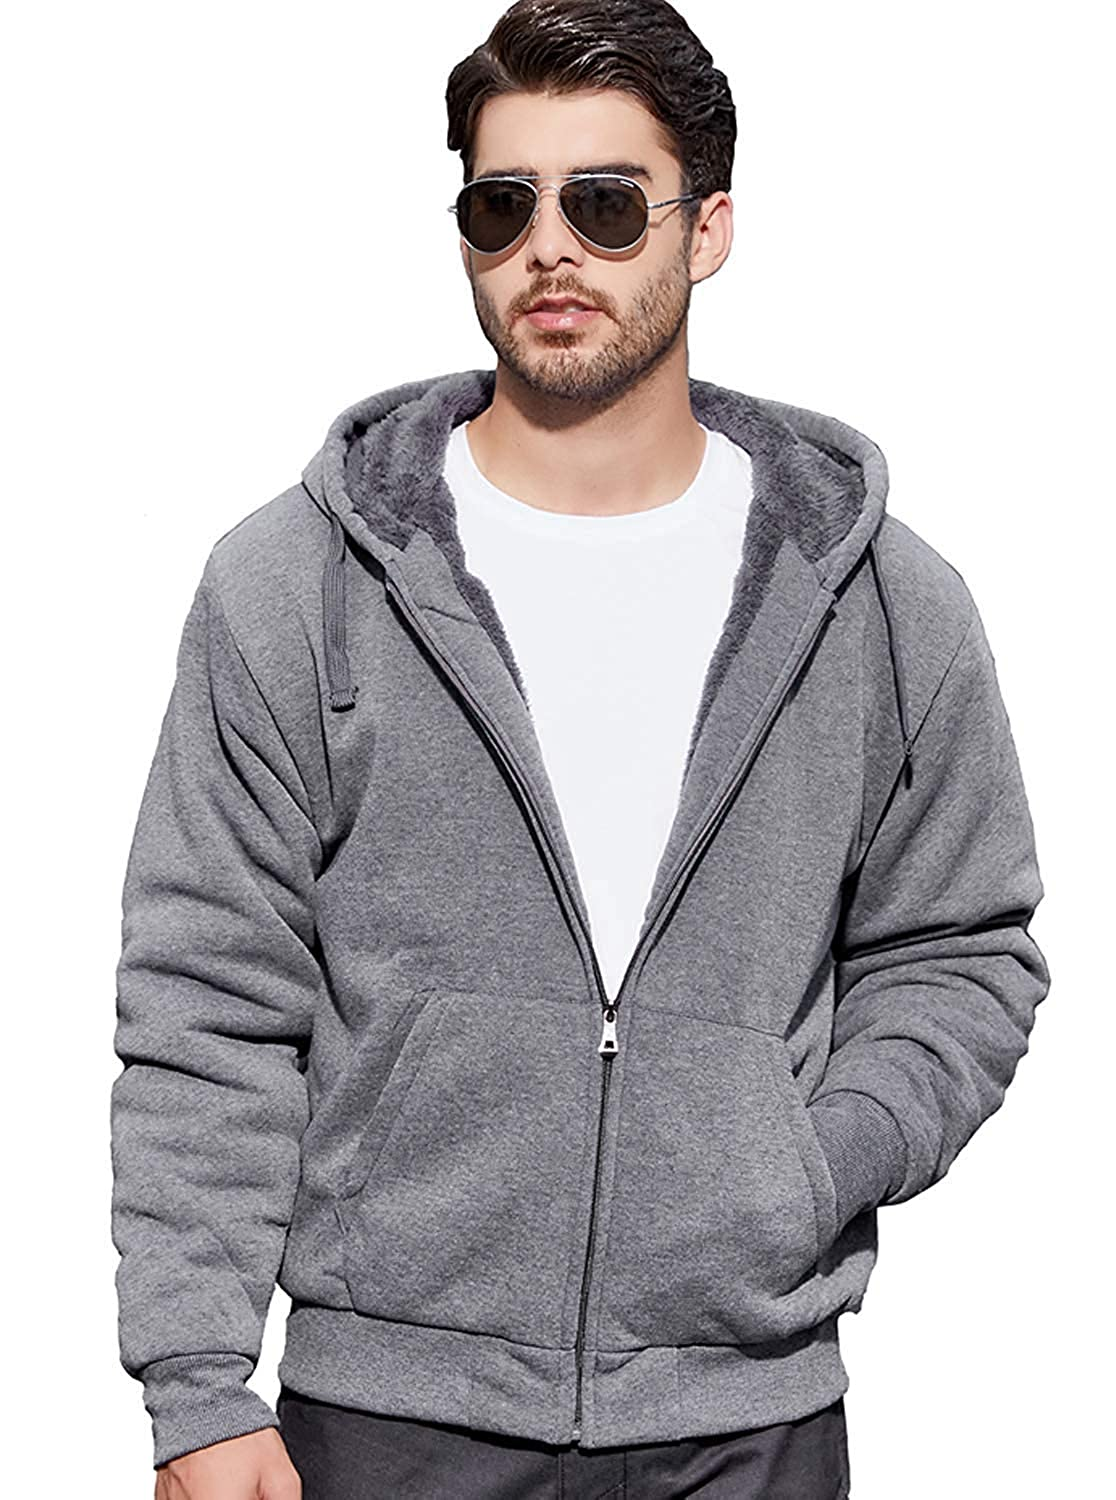 03d304e05b3b GEEK LIGHTING Men s Zip Up Fleece Hoodies Winter Heavyweight Sherpa Lined  Thermal Jackets at Amazon Men s Clothing store